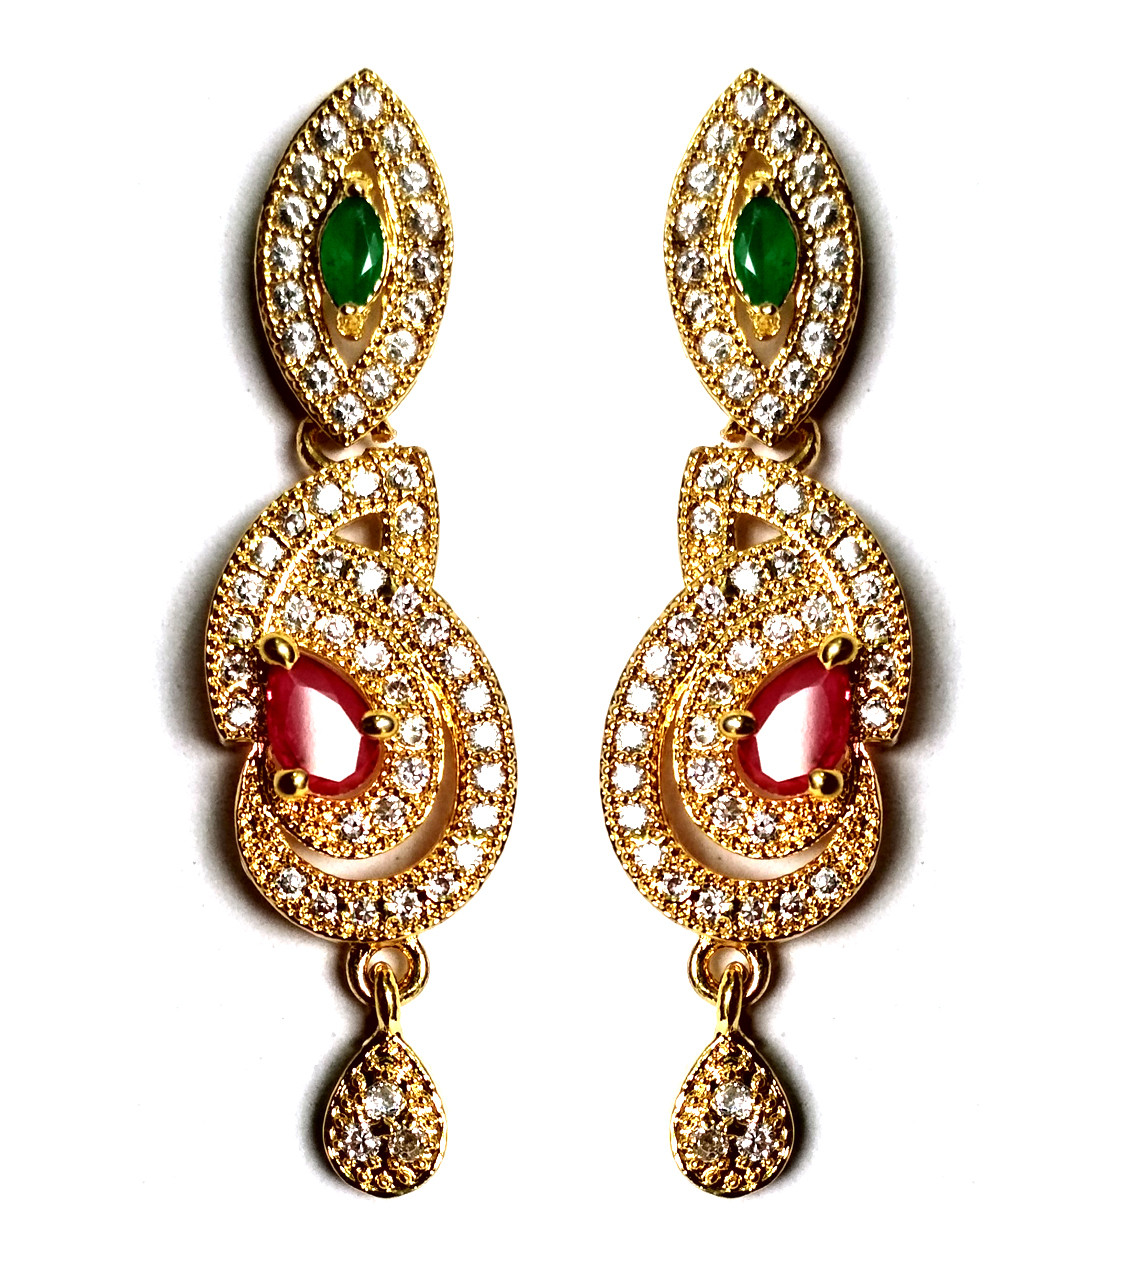 American Diamond Earrings From Kolkata For Woman & Girls HM08